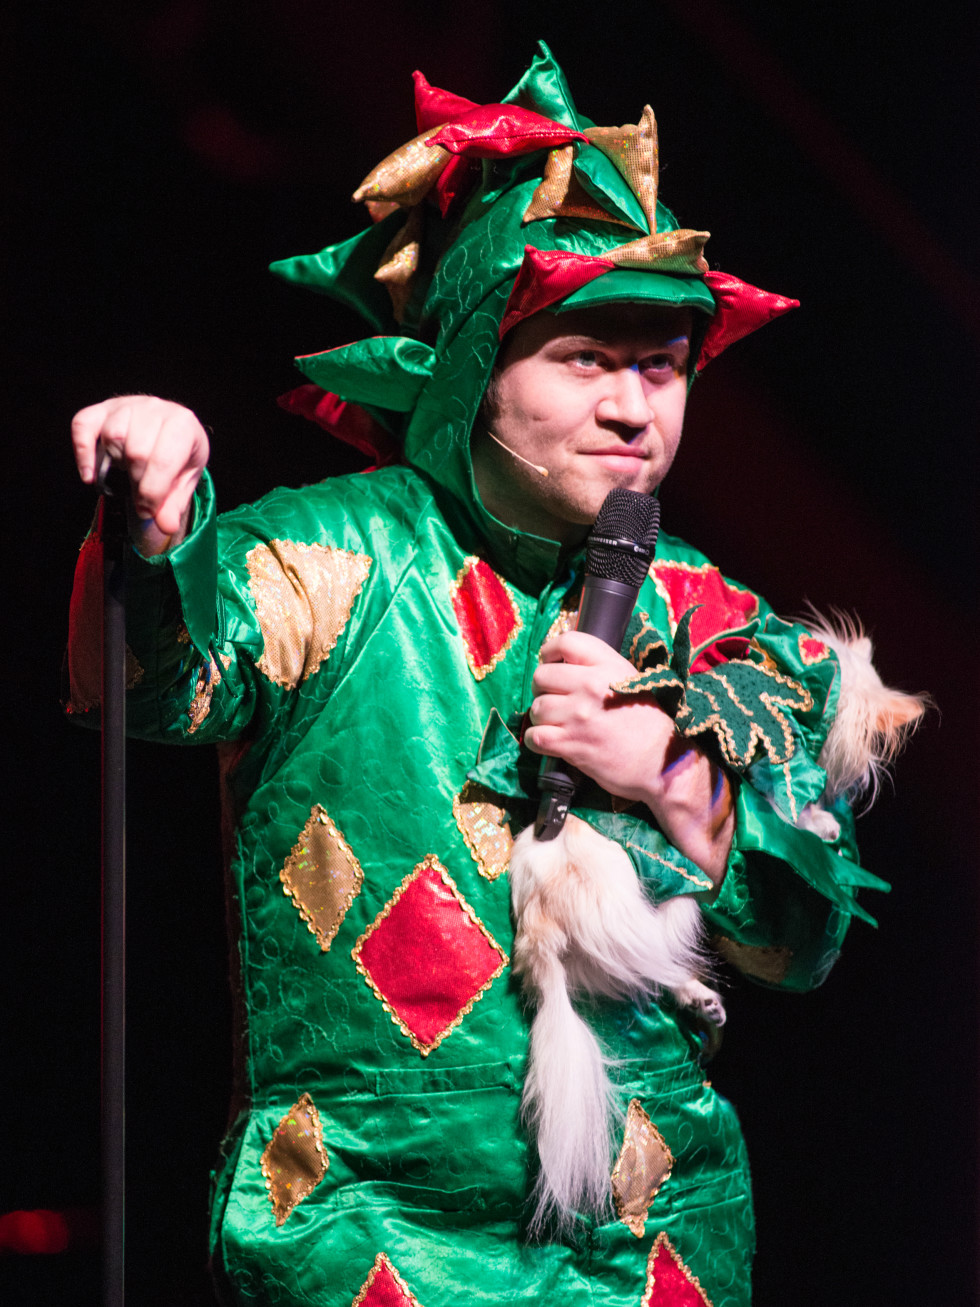 Moontower Comedy and Oddity Festival 2016 Piff the Magic Dragon John van der Put